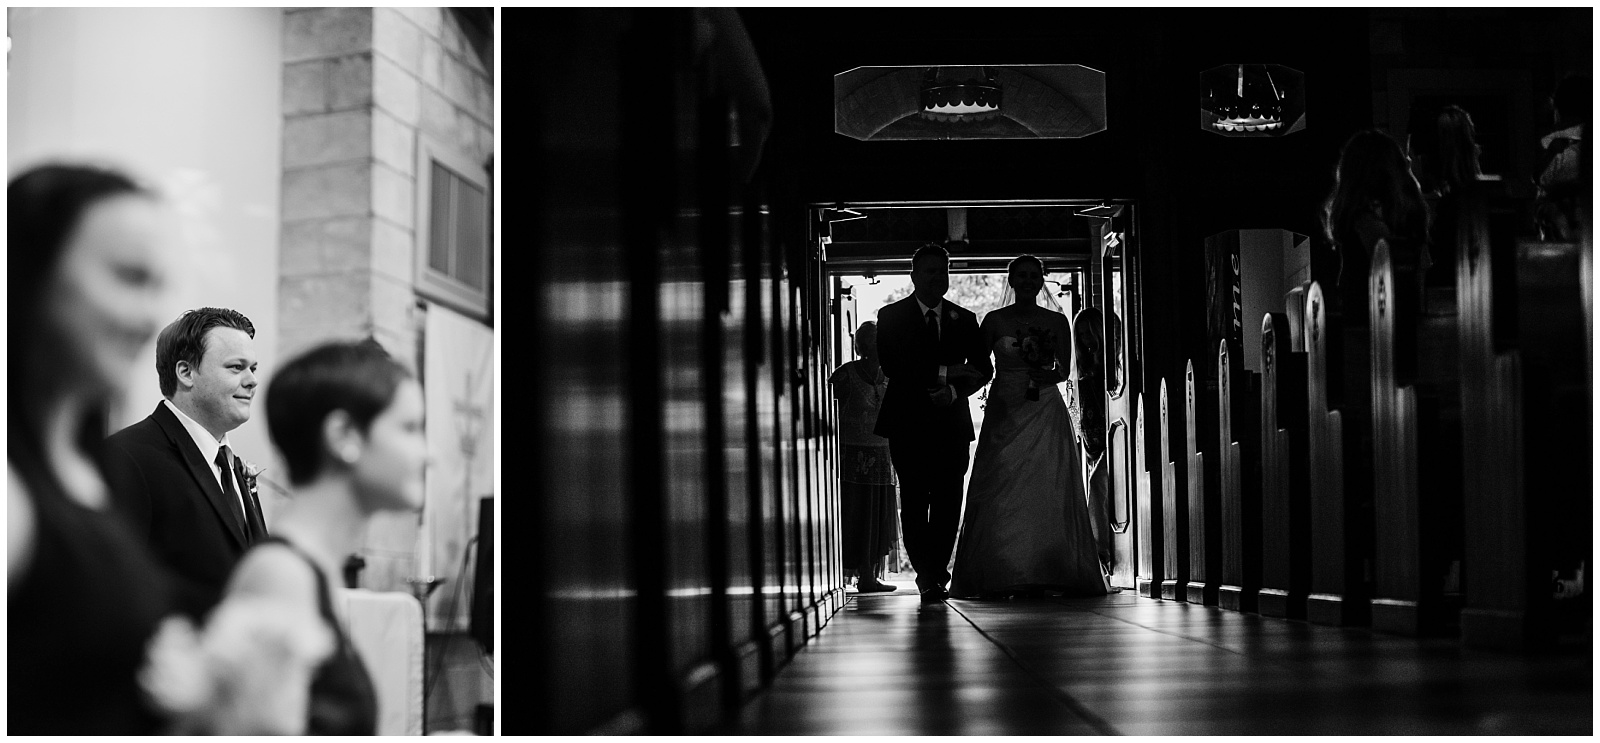 Then the moment we all had waited for…the moment the groom notices his bride enter and his face lights up! It's always so hard to keep our composure and keep shooting thru tears. Especially at this wedding